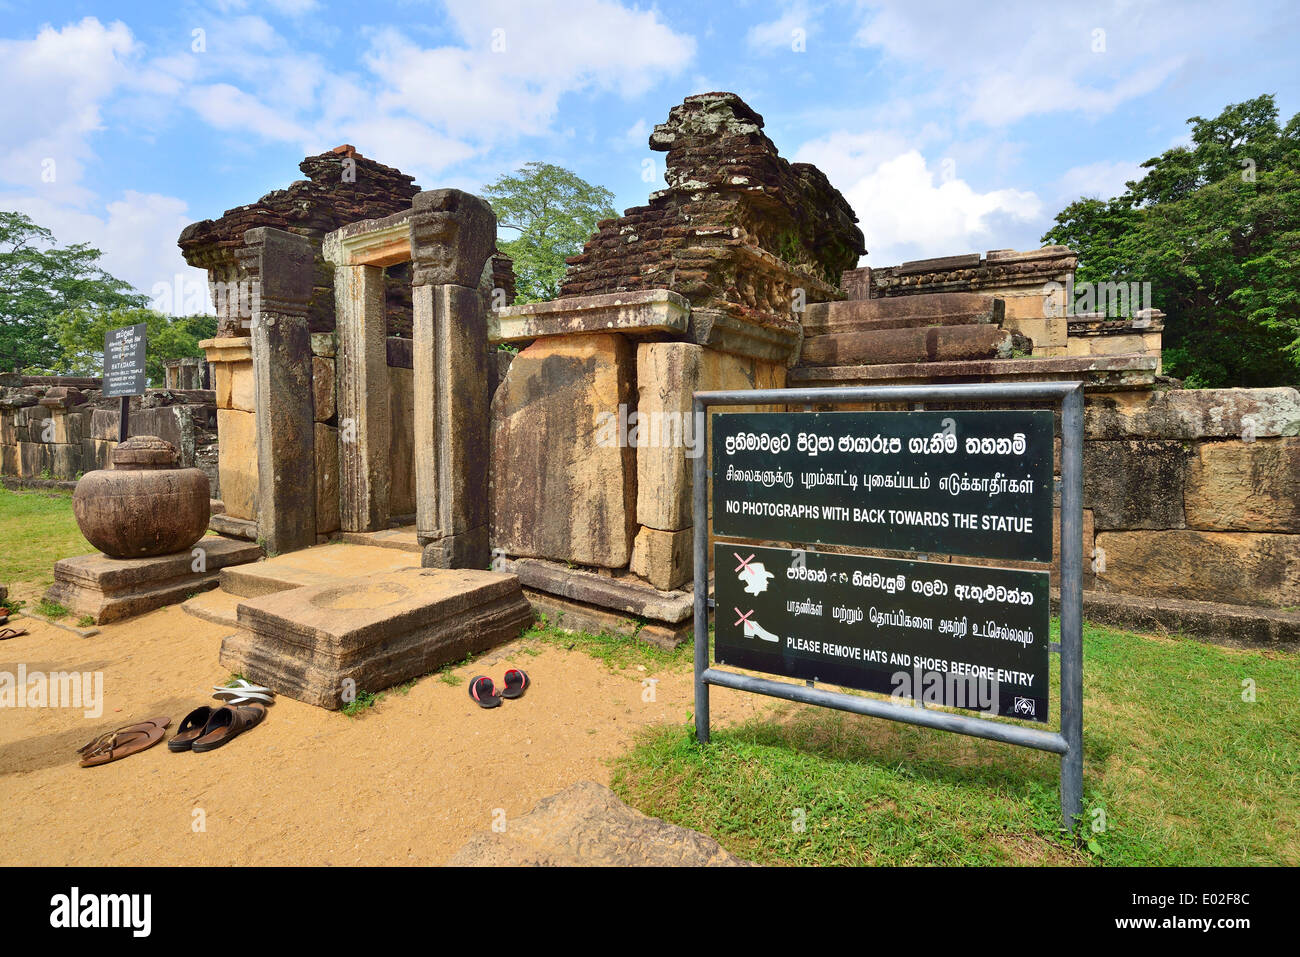 Panels with rules of etiquette in front of the Hatadage temple, UNESCO World Heritage Site, Polonnaruwa, North Central Stock Photo